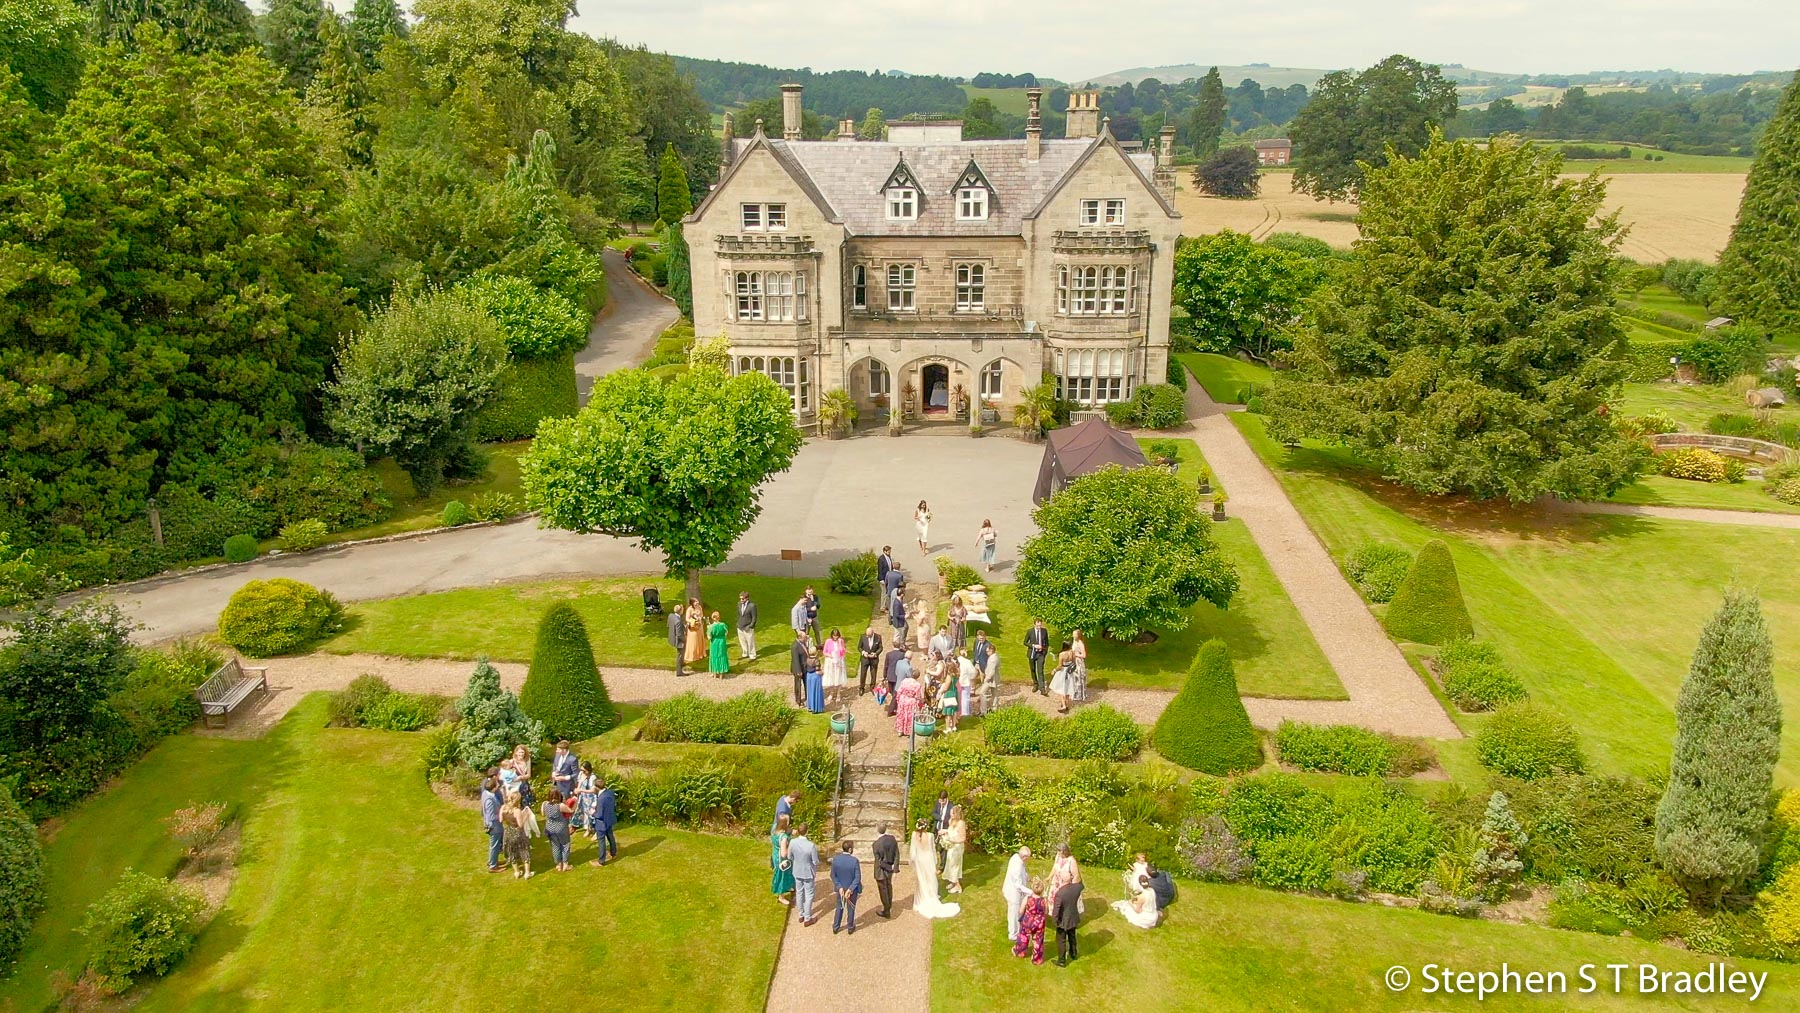 Aerial video of country house wedding at Birdsgrove, Derbyshire, UK, by Stephen S T Bradley - aerial drone photographer and video production services in Dublin and throughout Ireland. Screenshot reference 8